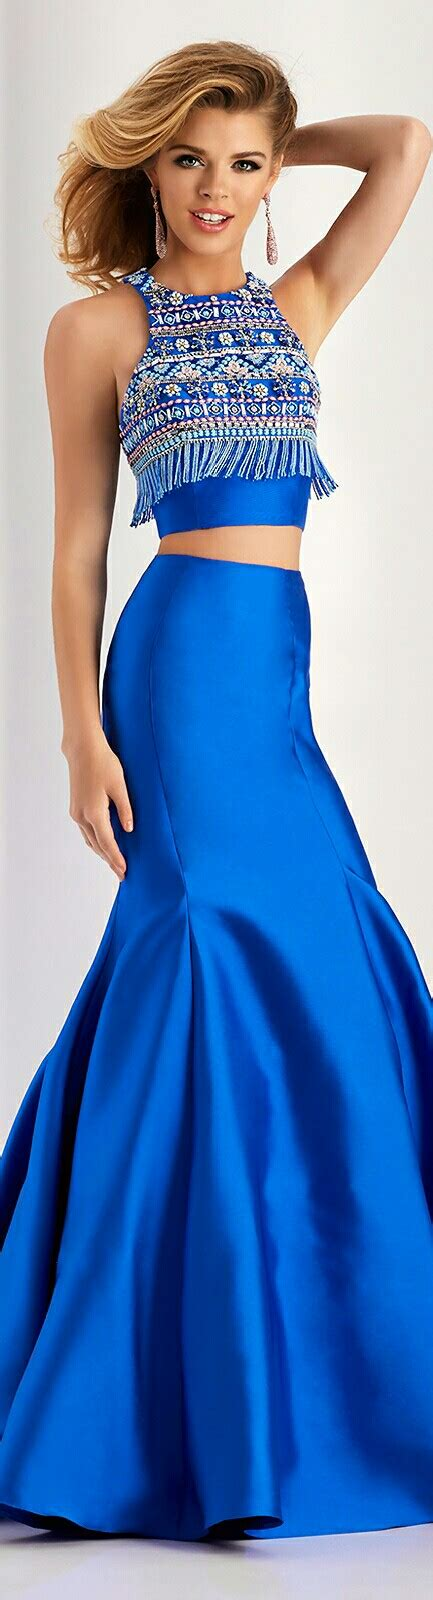 CLARISSE In Blue Mermaid-Style Funnel Skirt w. Chunky ...